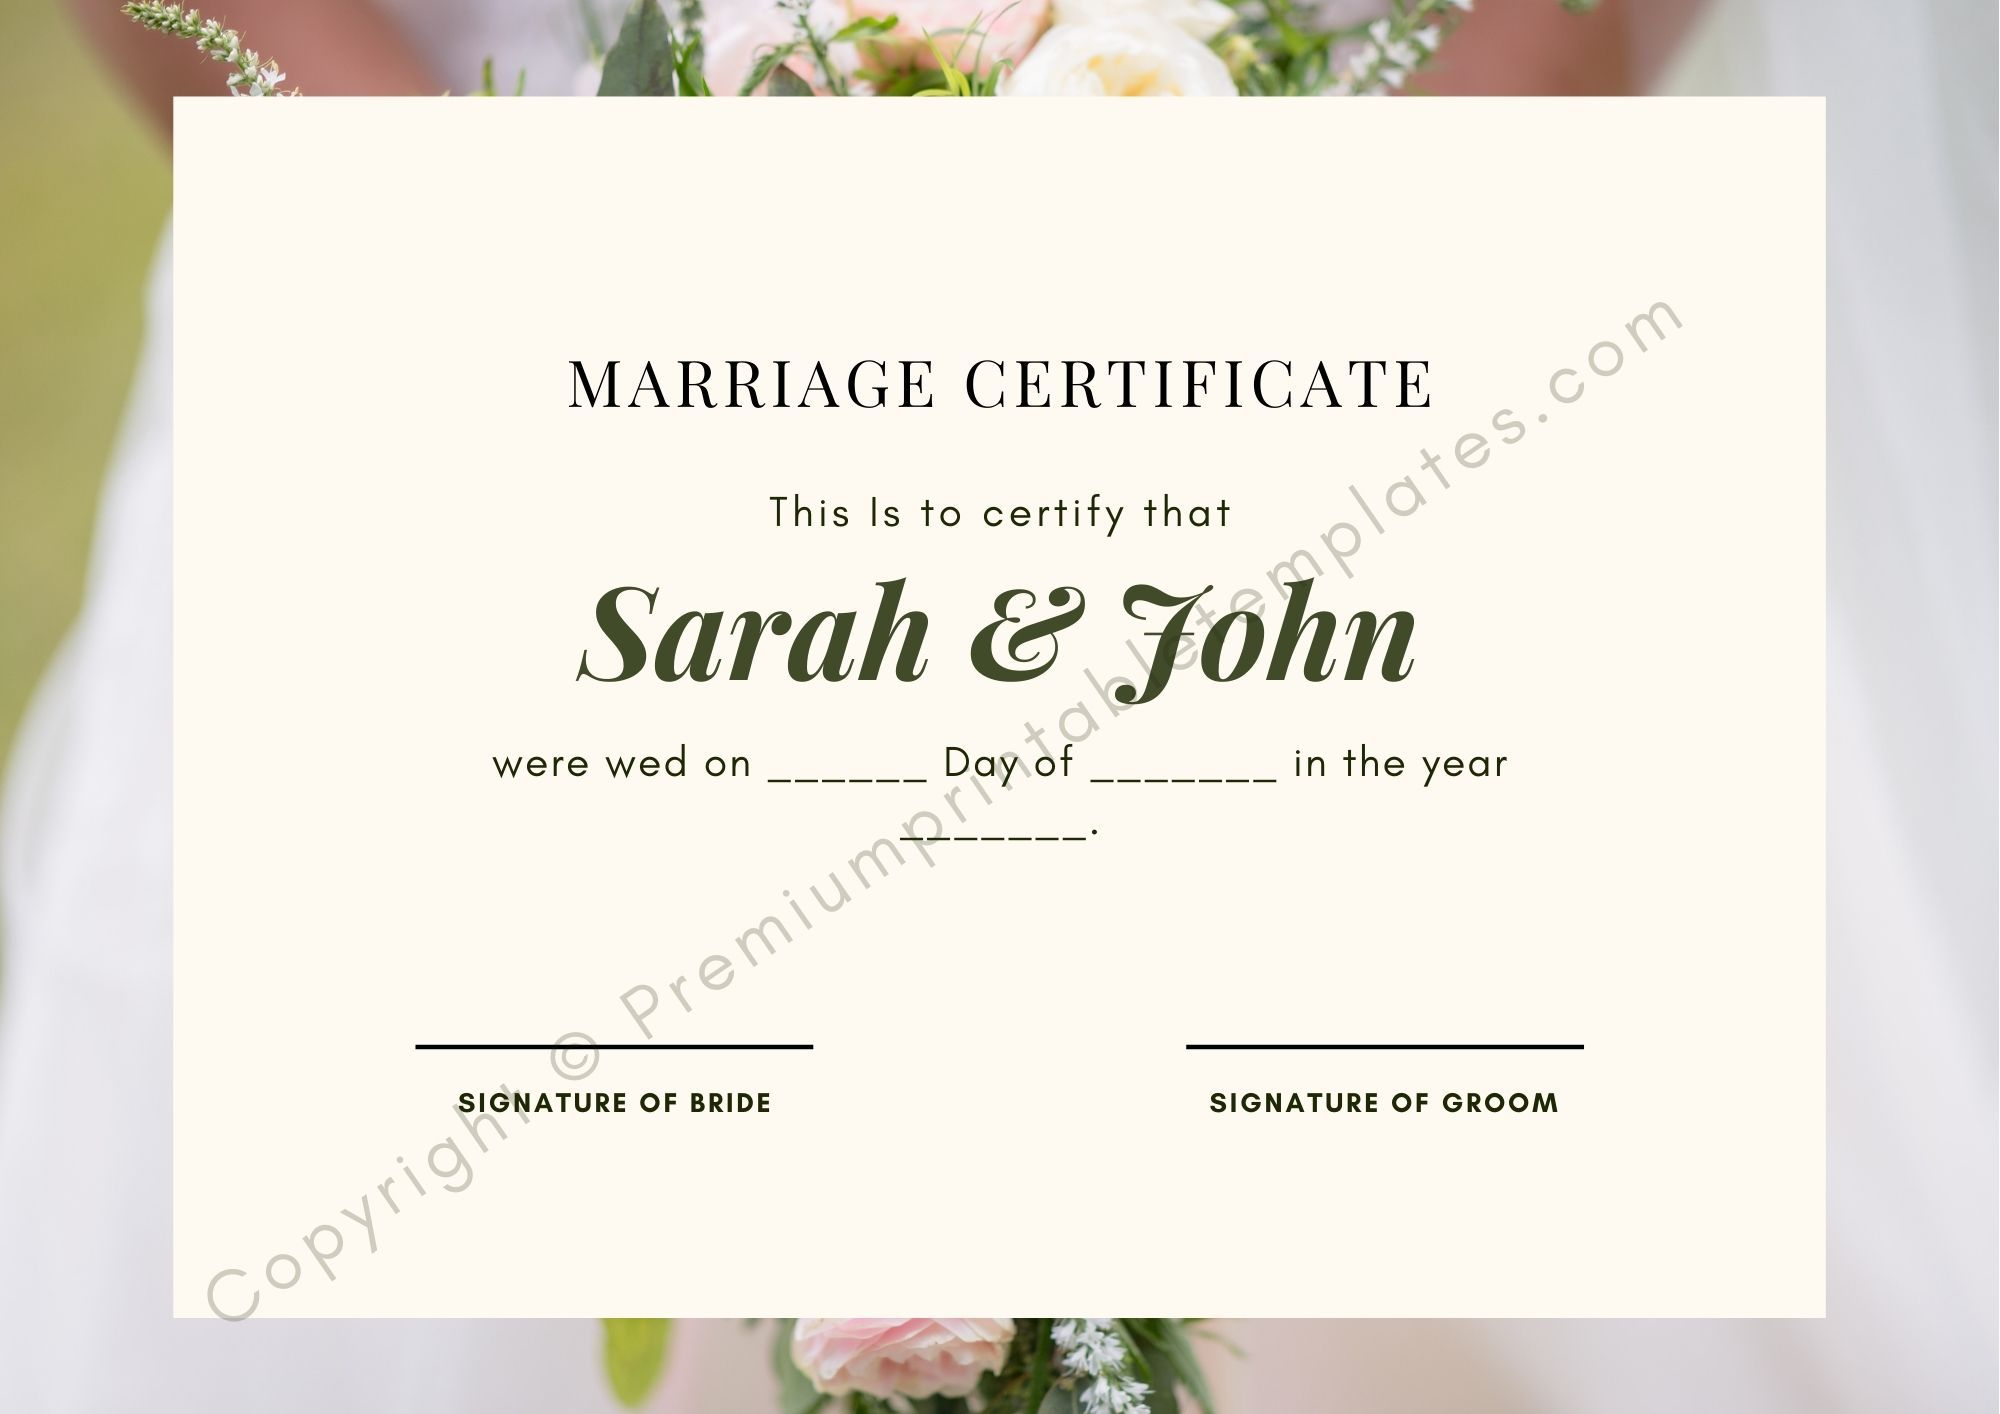 004 Marvelou Certificate Of Marriage Template Highest Quality  Word AustraliaFull